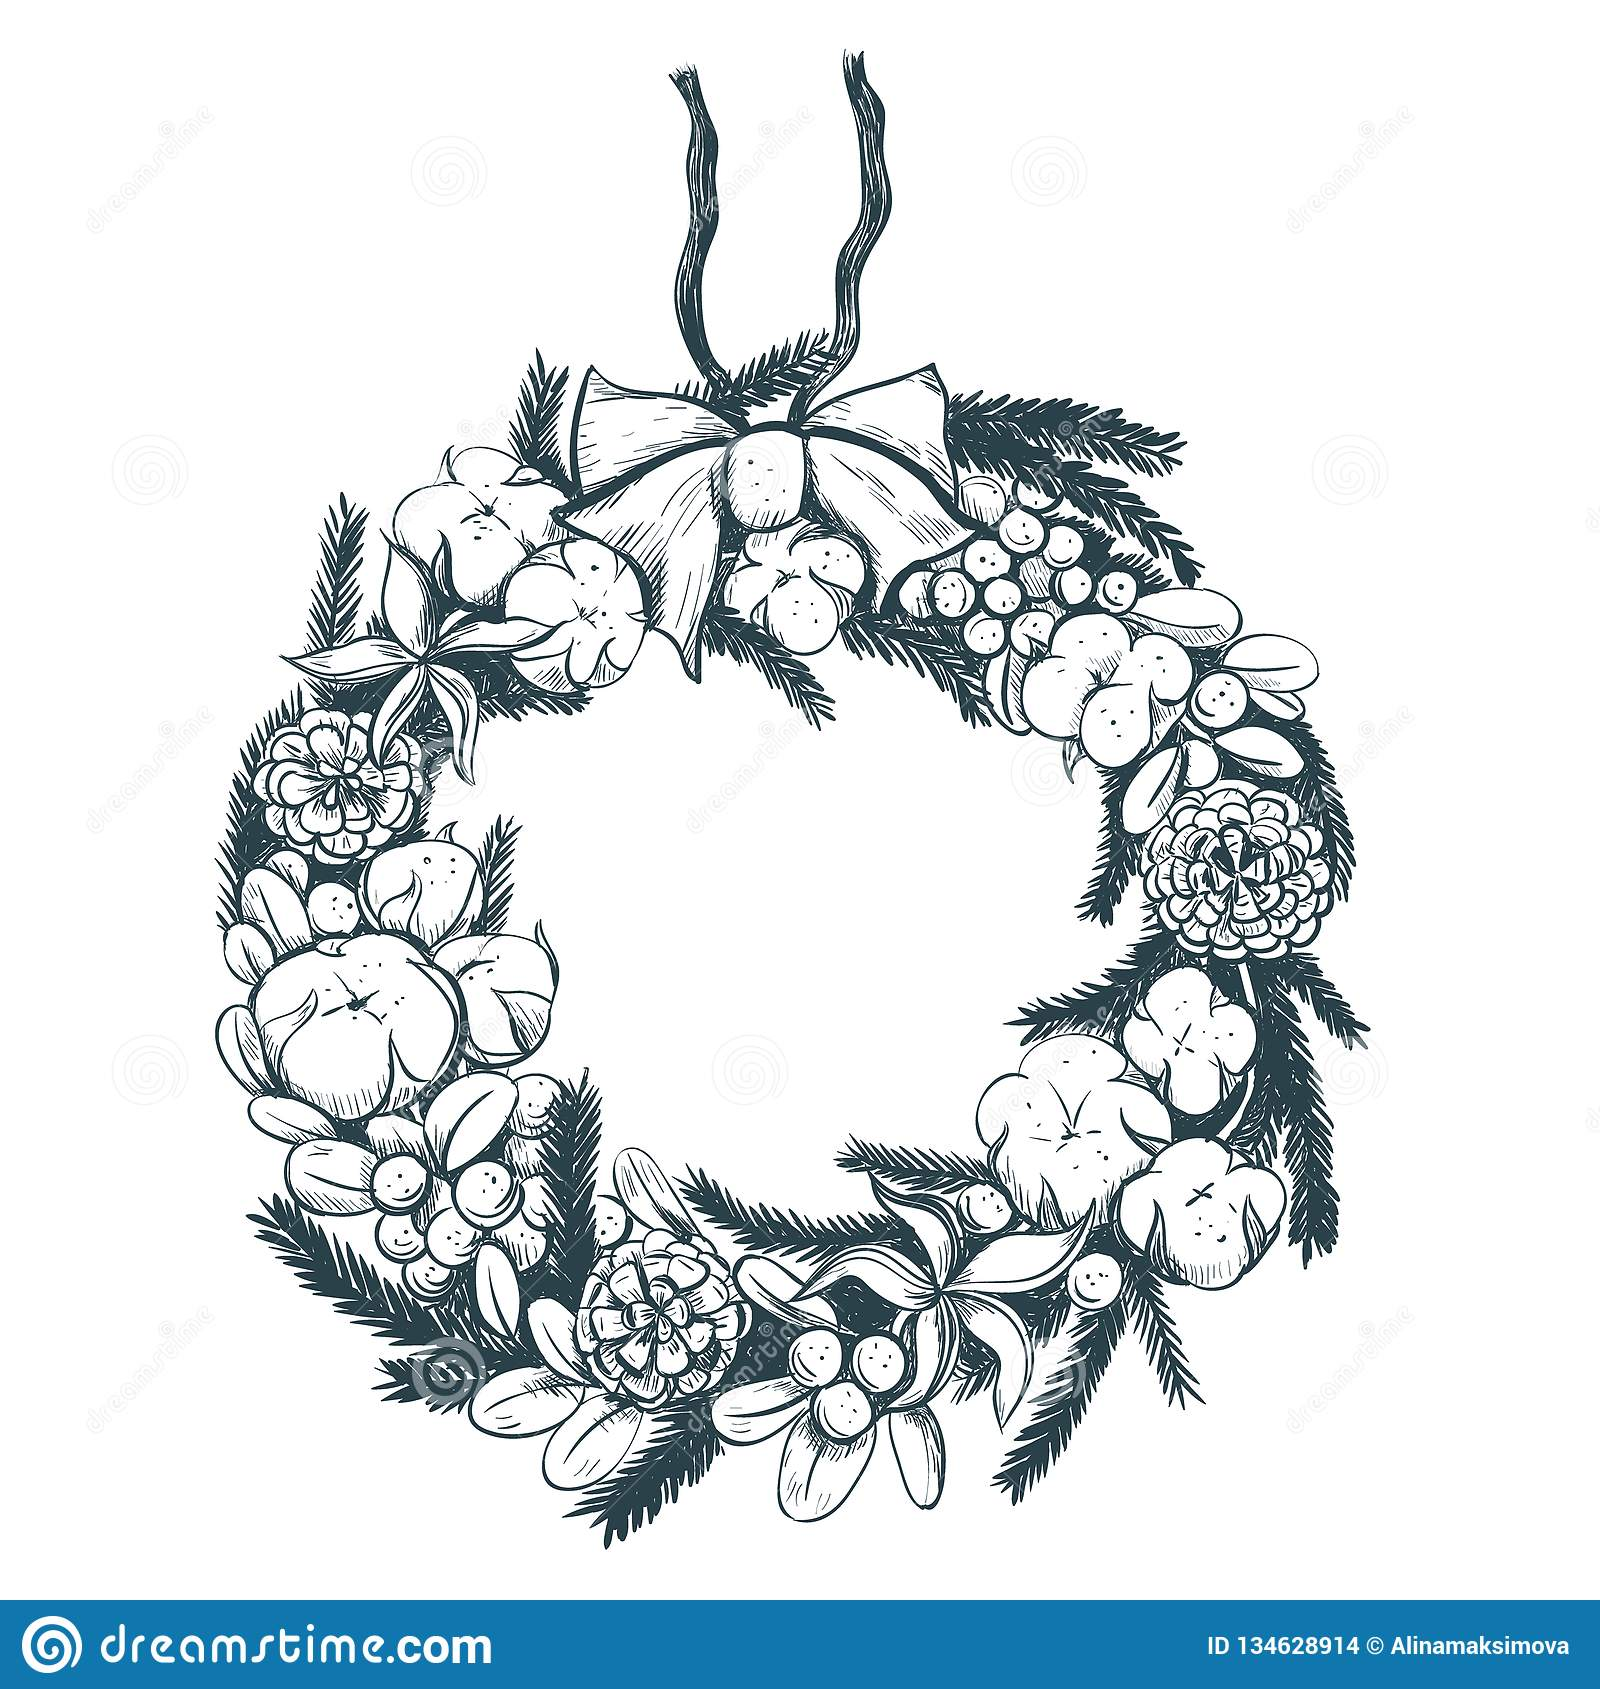 Christmas Wreath Drawing.Christmas Wreath Stock Vector Illustration Of Nature